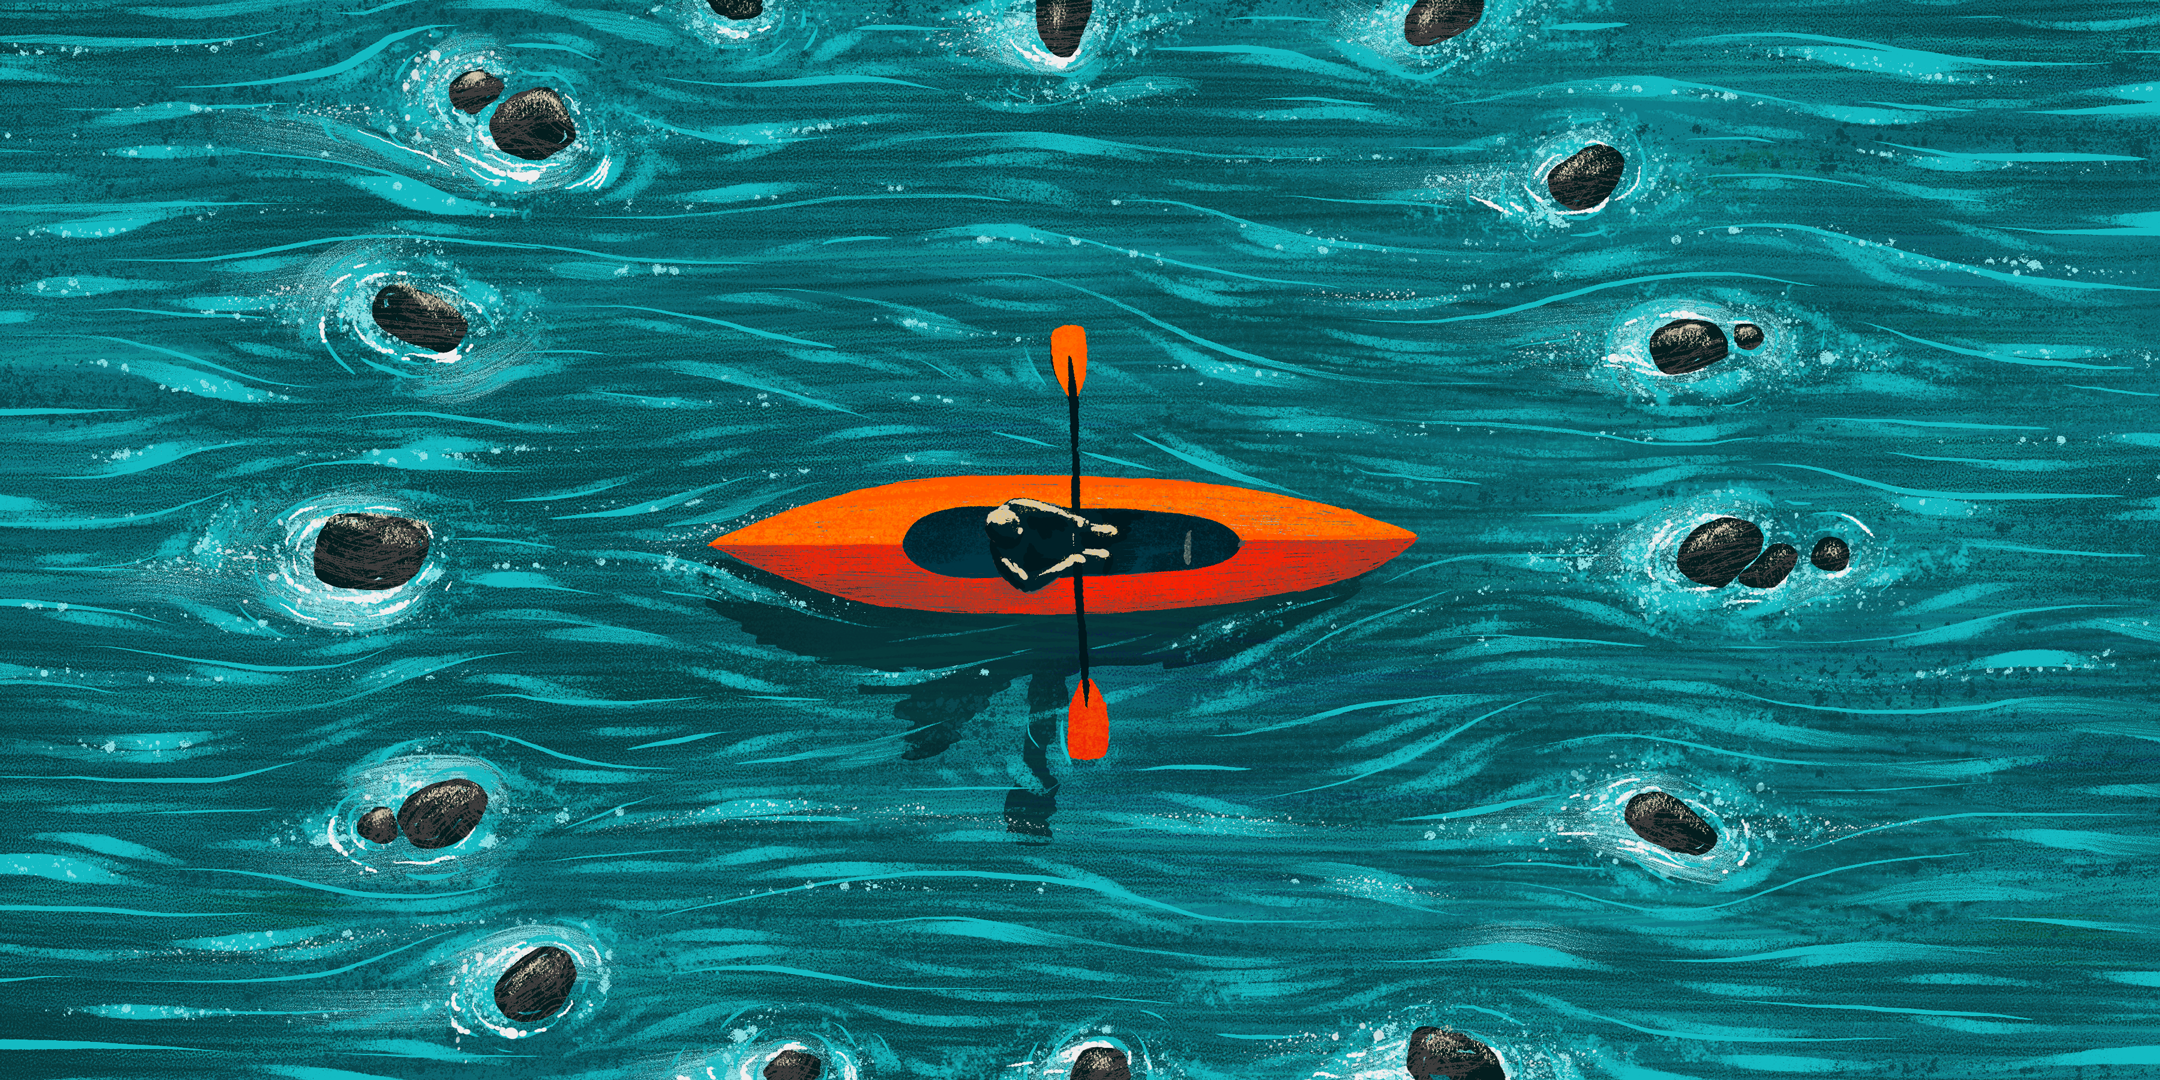 A person in a kayak surrounded by rocks